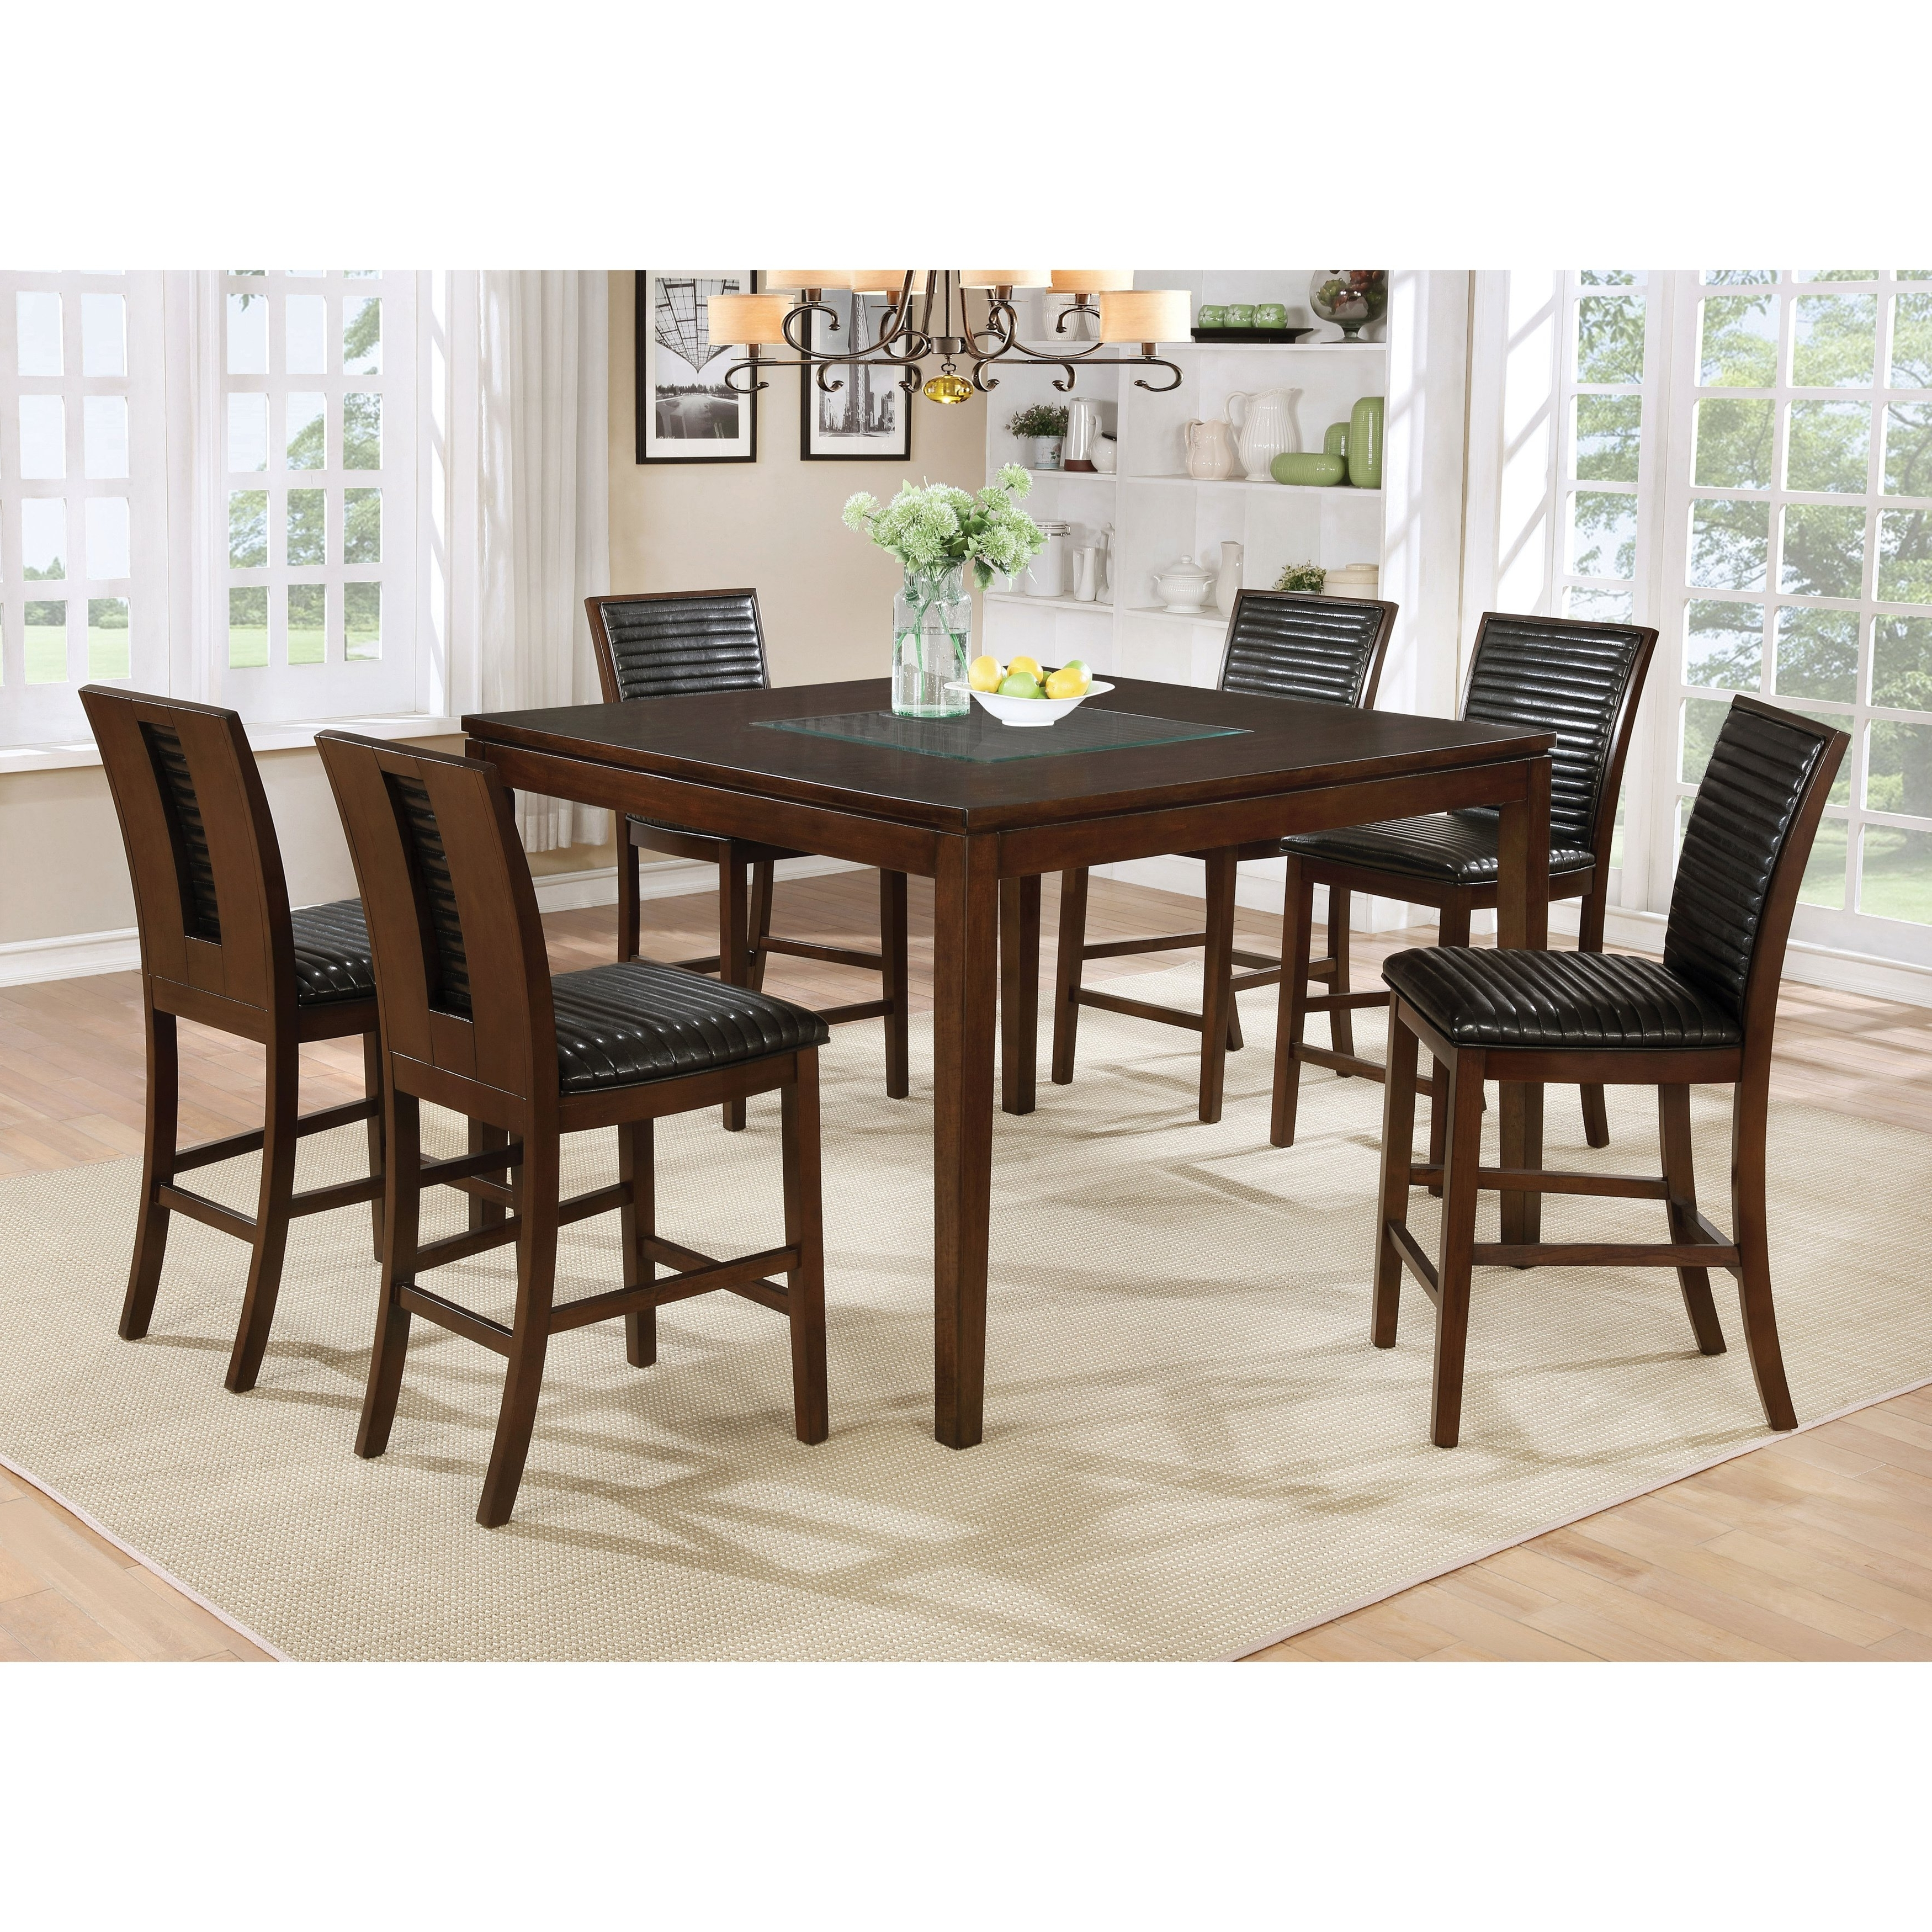 Shop Furniture Of America Gileon Walnut Wood And Faux Leather 7 Throughout Trendy Leon 7 Piece Dining Sets (View 7 of 25)